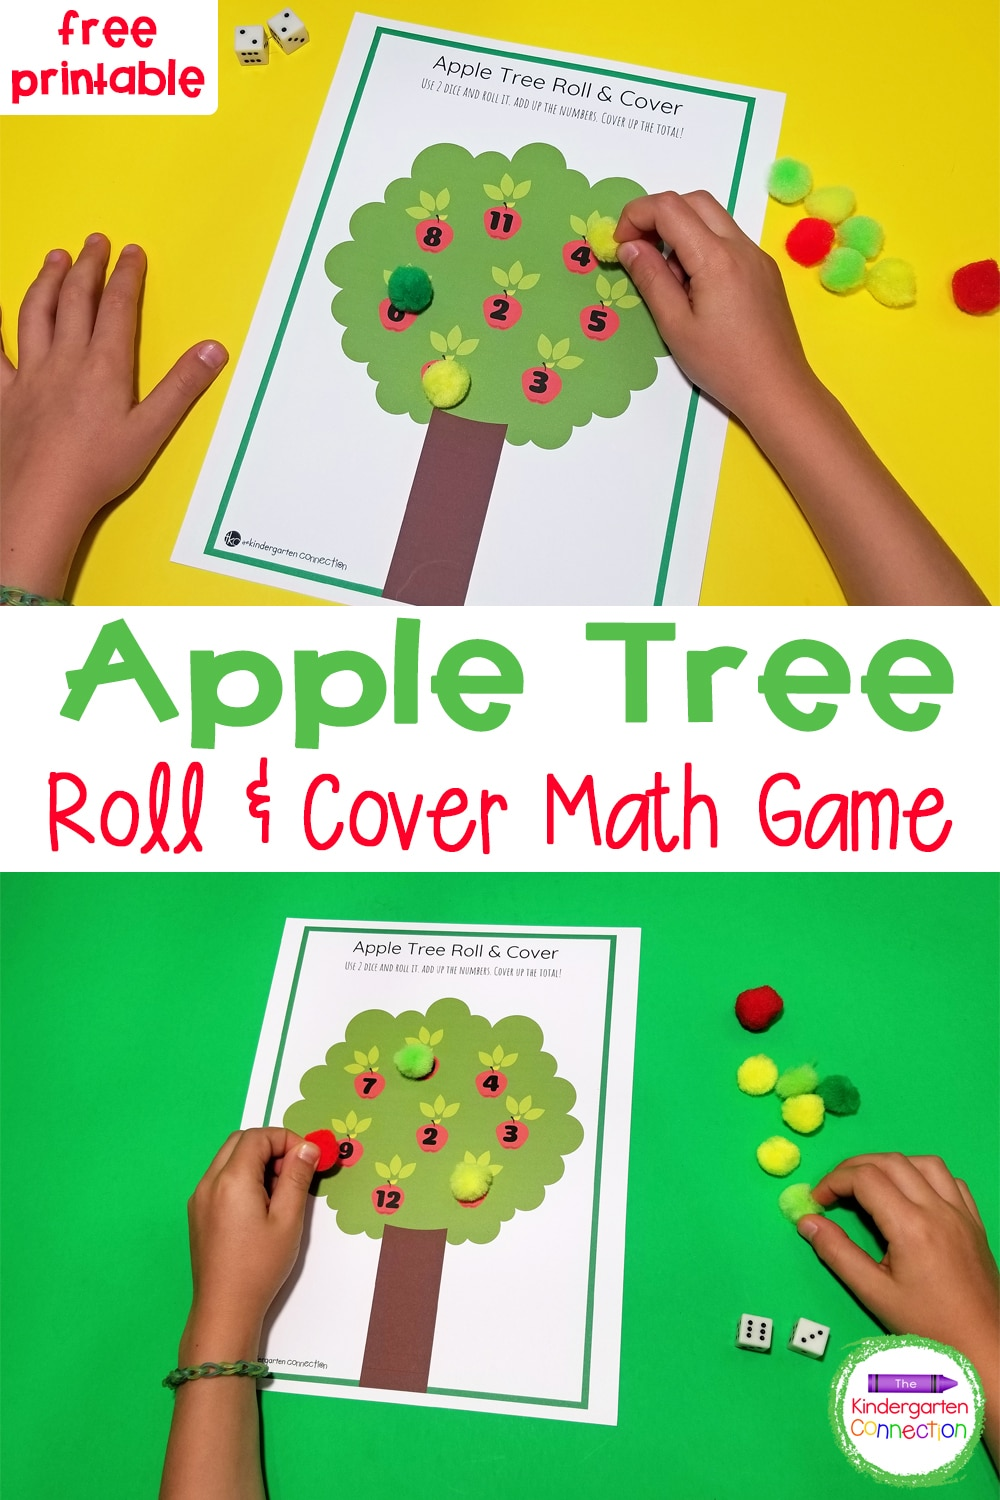 This free Apple Tree Roll and Cover Math Game for Kindergarten is perfect for strengthening counting and addition skills in a fun way!